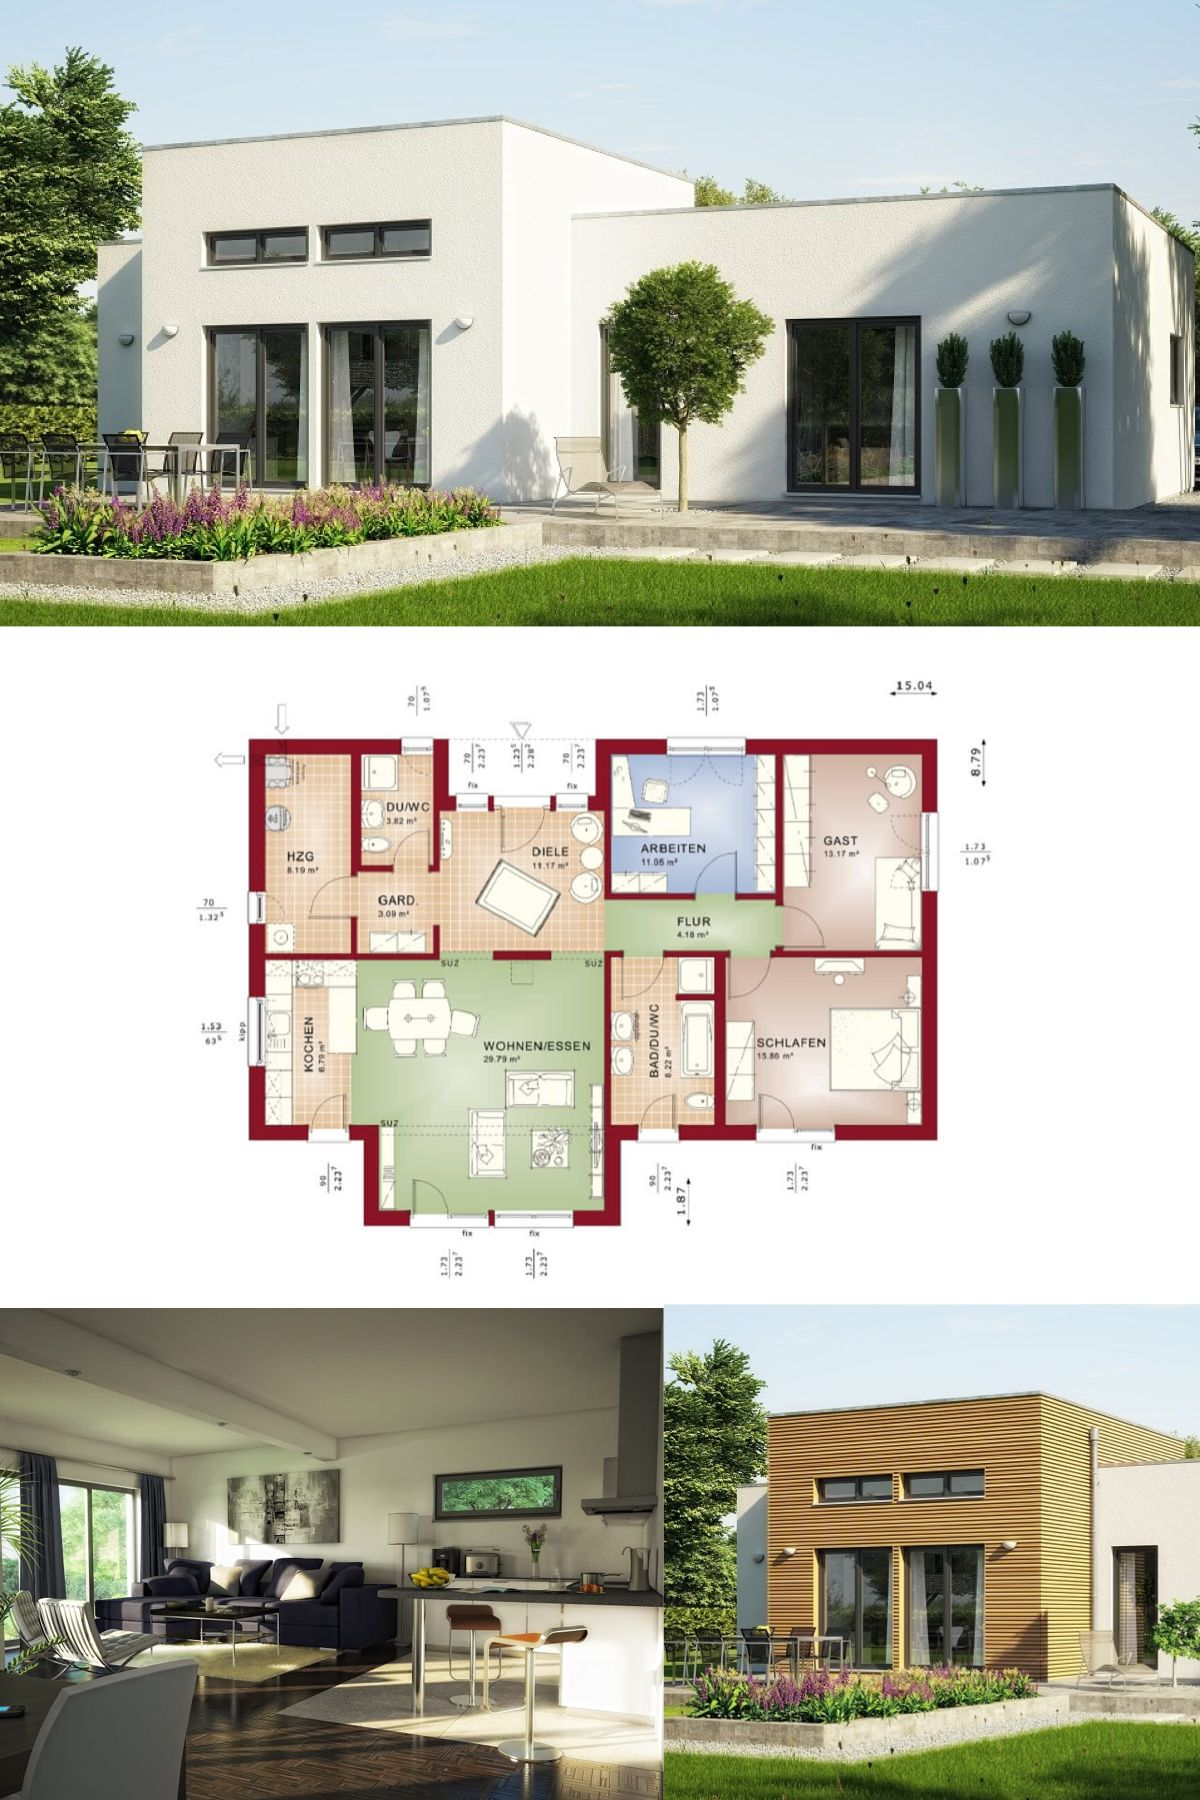 Moderner BUNGALOW Bauhausstil Haus Evolution 111